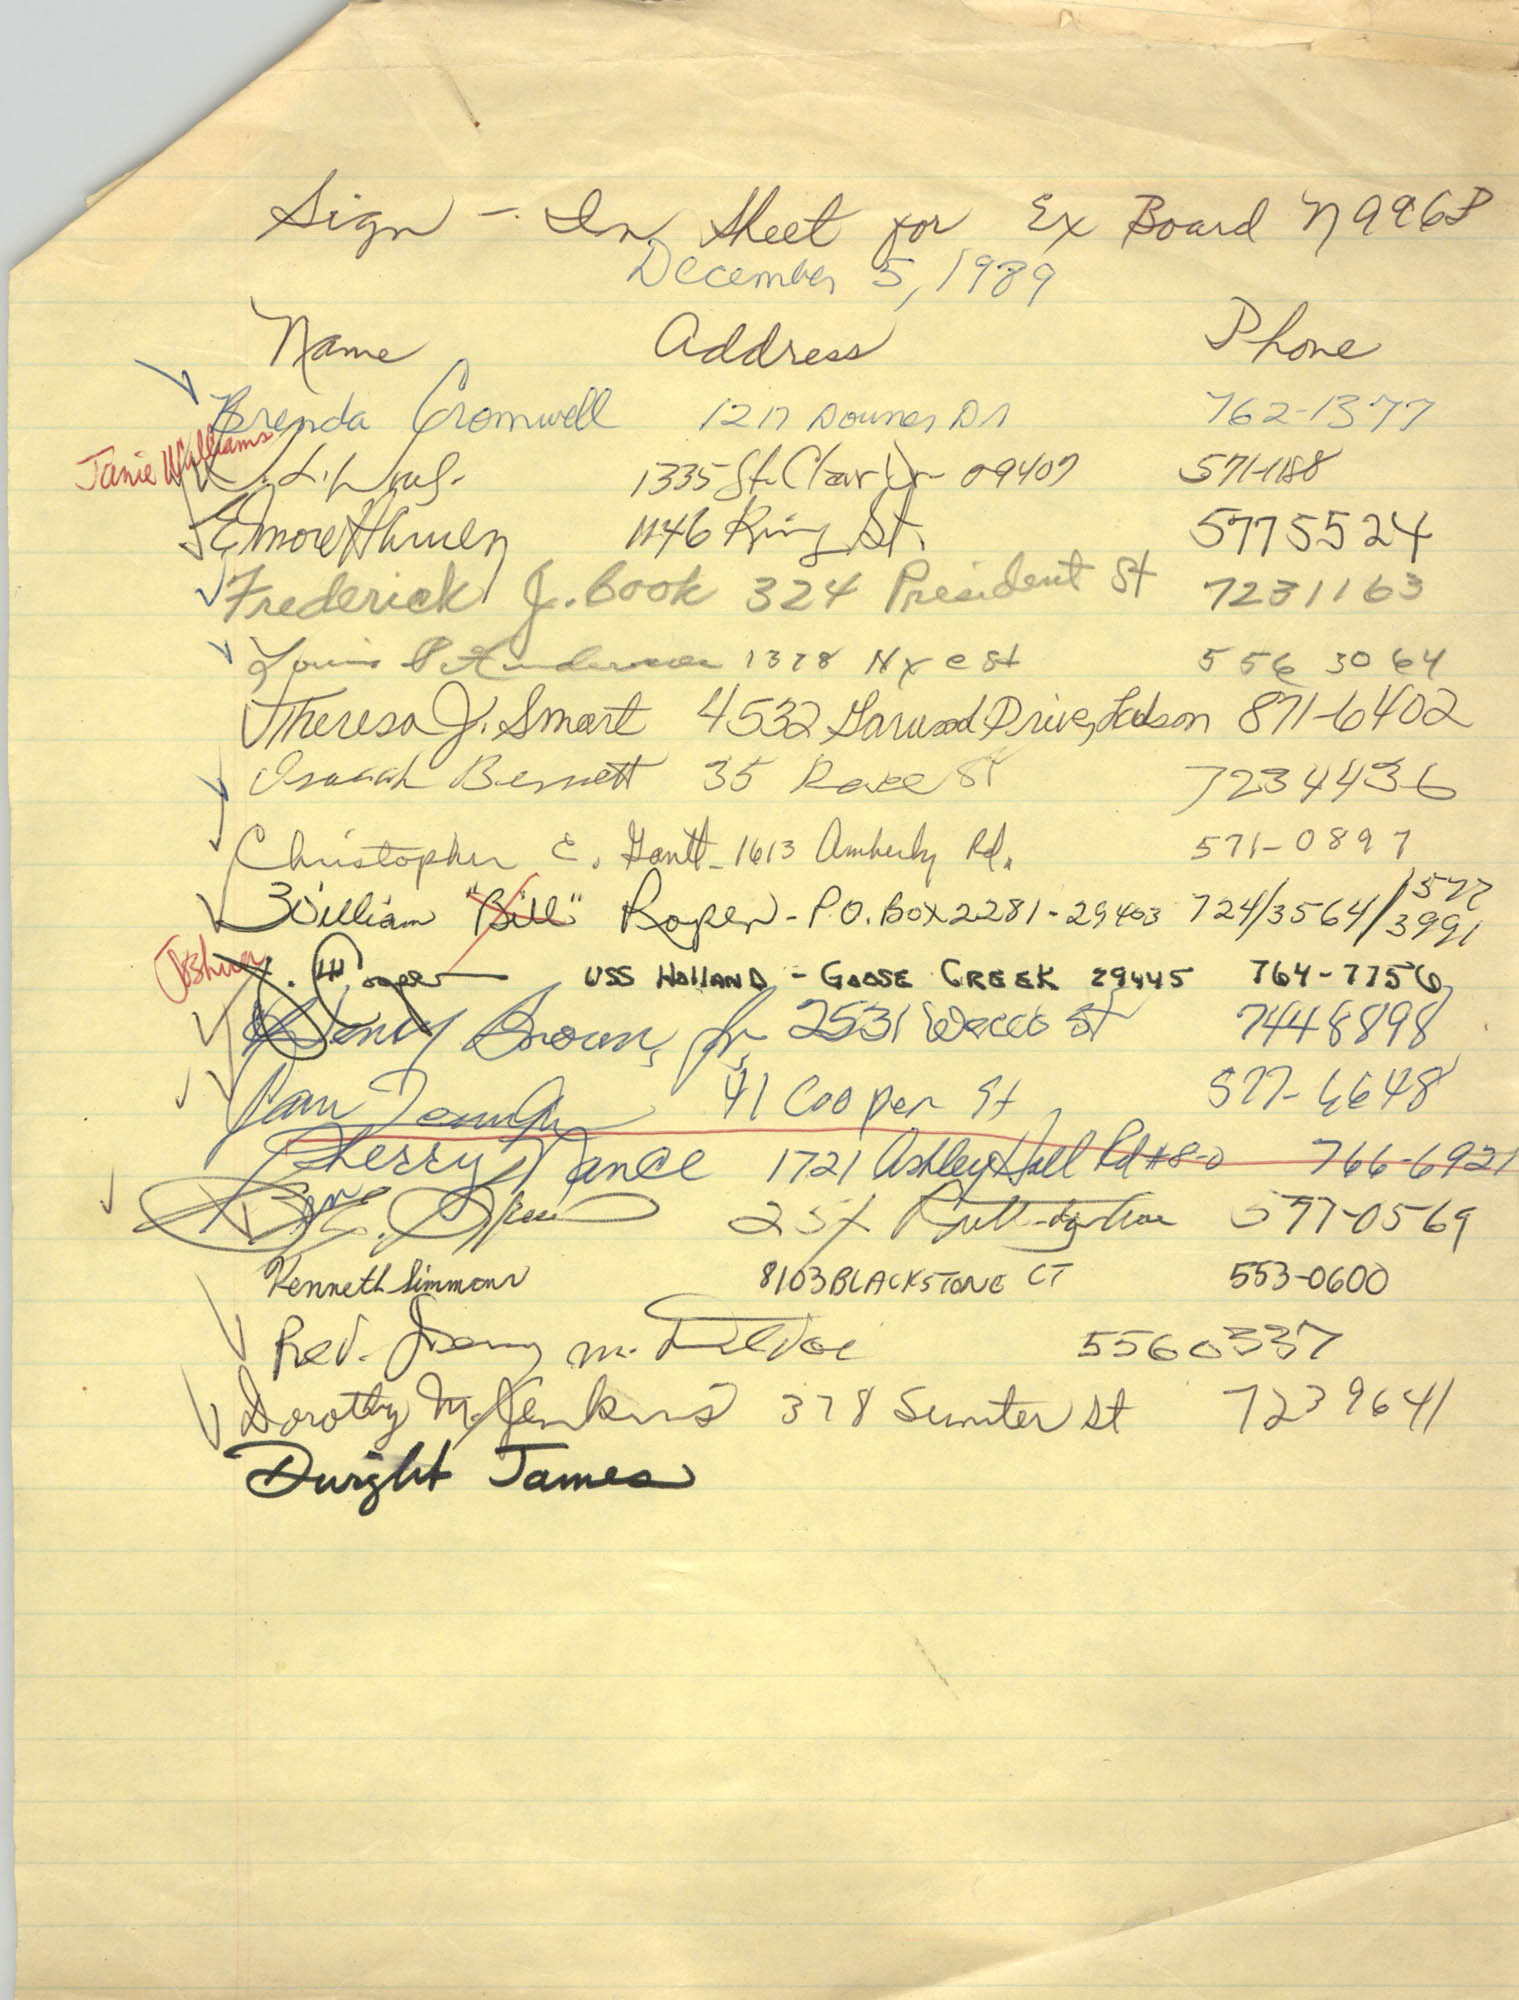 Sign-in Sheet, Charleston Branch of the NAACP, Executive Board Meeting, December 5, 1989